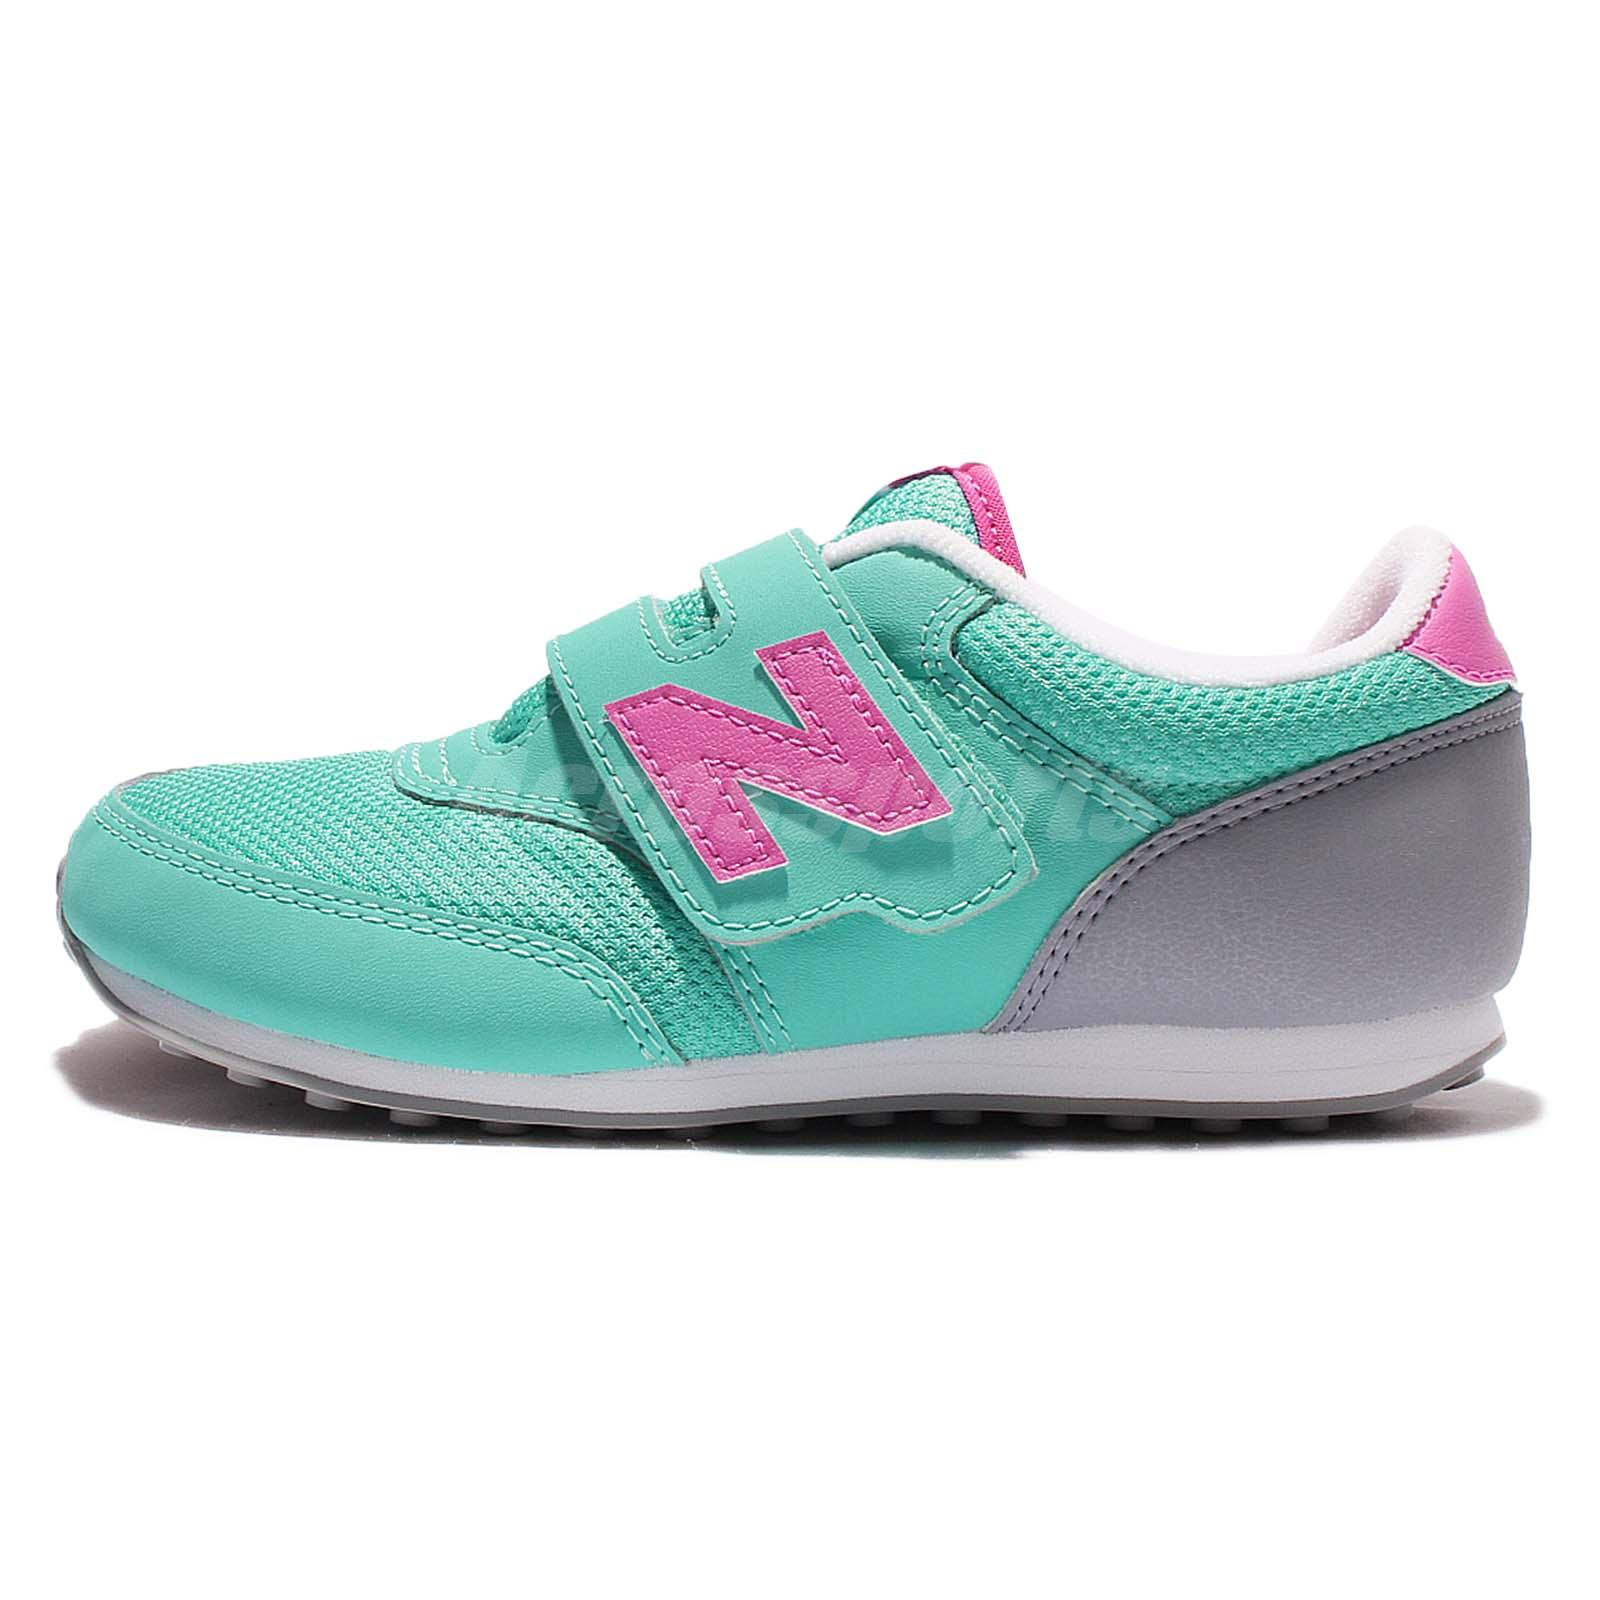 new balance k620app w wide green pink boys grils